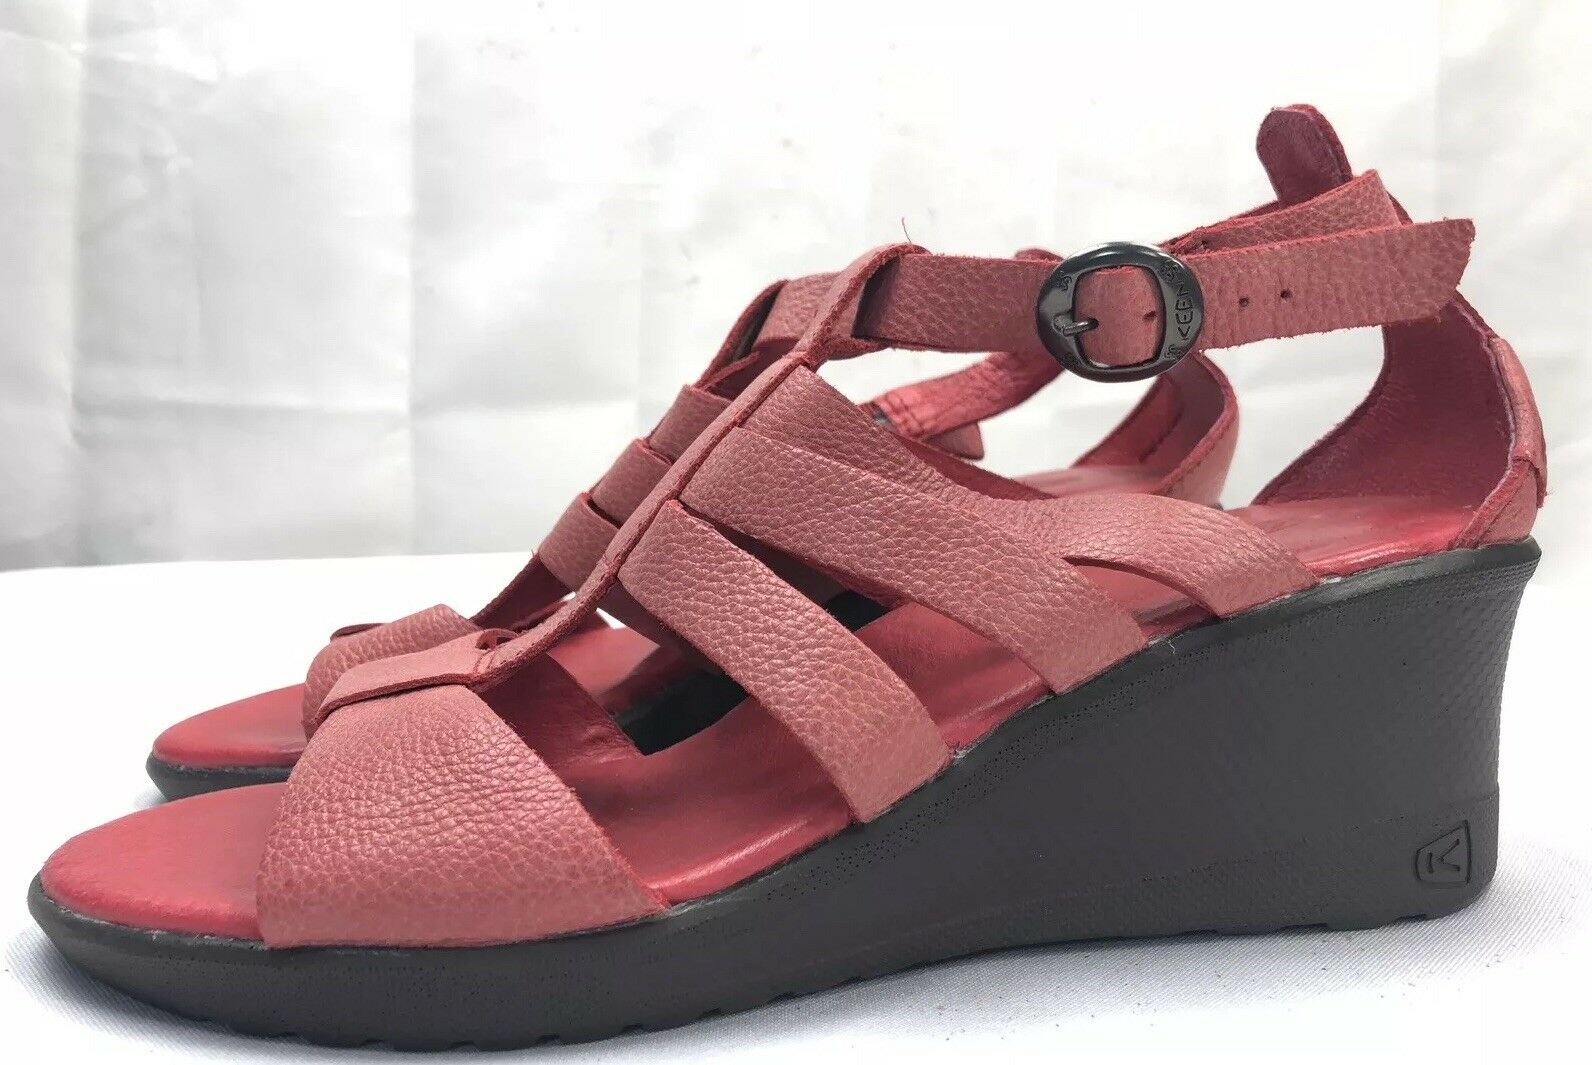 Keen Women's Victoria Size Gladiator Ribbon Red Leather Wedge Sandals Size Victoria US 7.5 af91c7